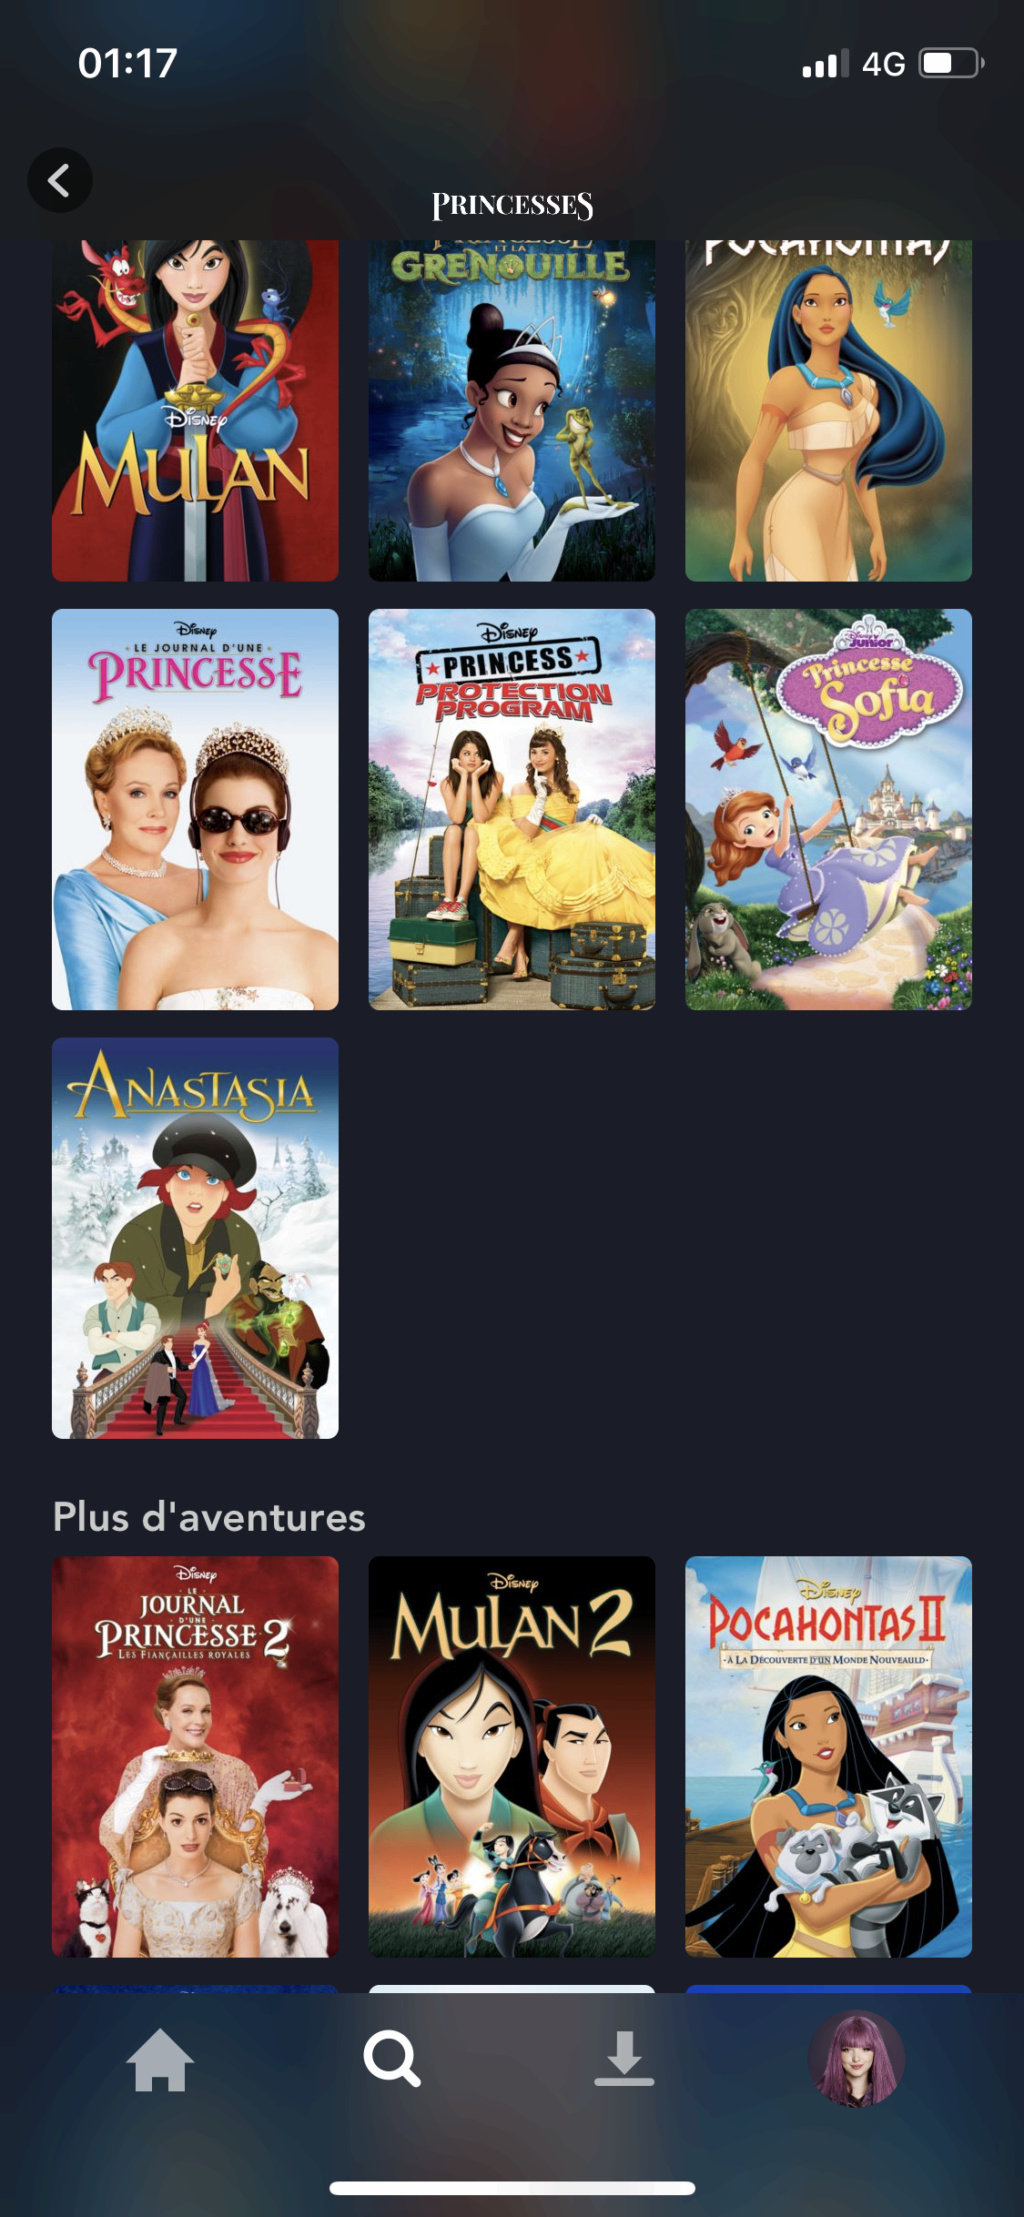 Le lancement de Disney+ en France - Page 14 B2abdd10